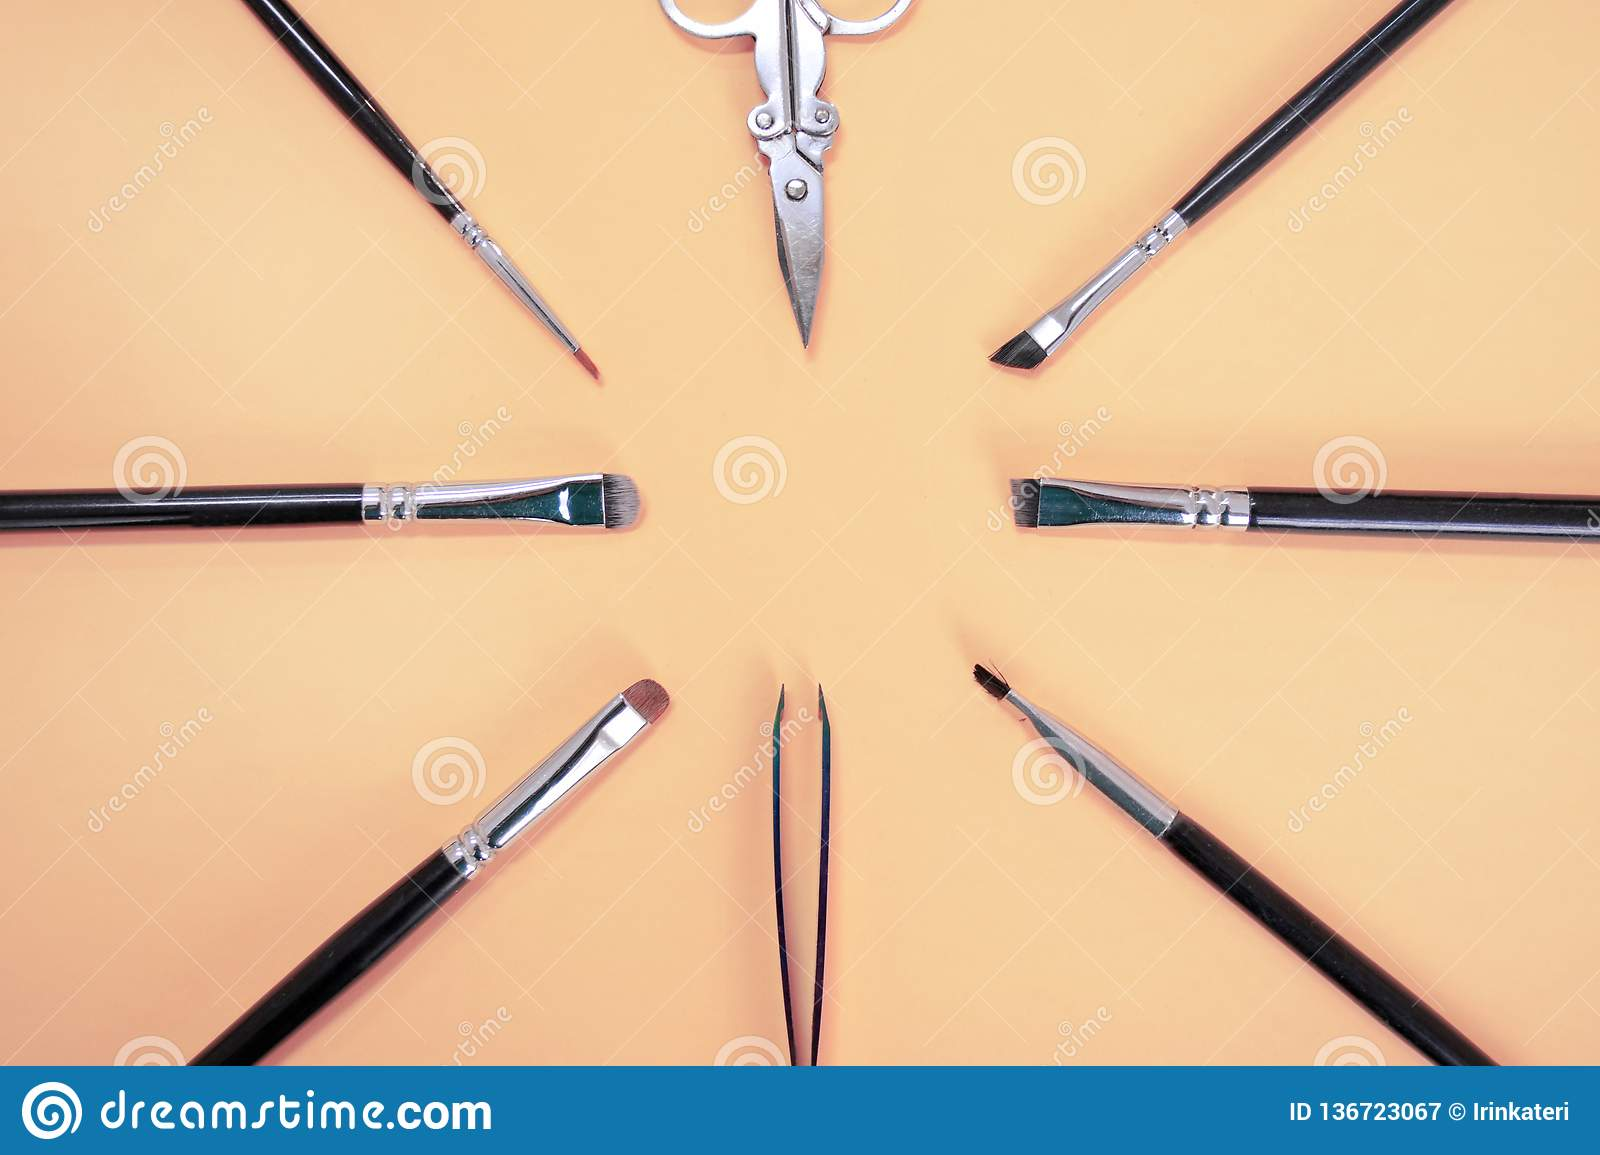 A set of different makeup artist brushes, tweezers and scissors lie in a circle with copyspace for text on pink color